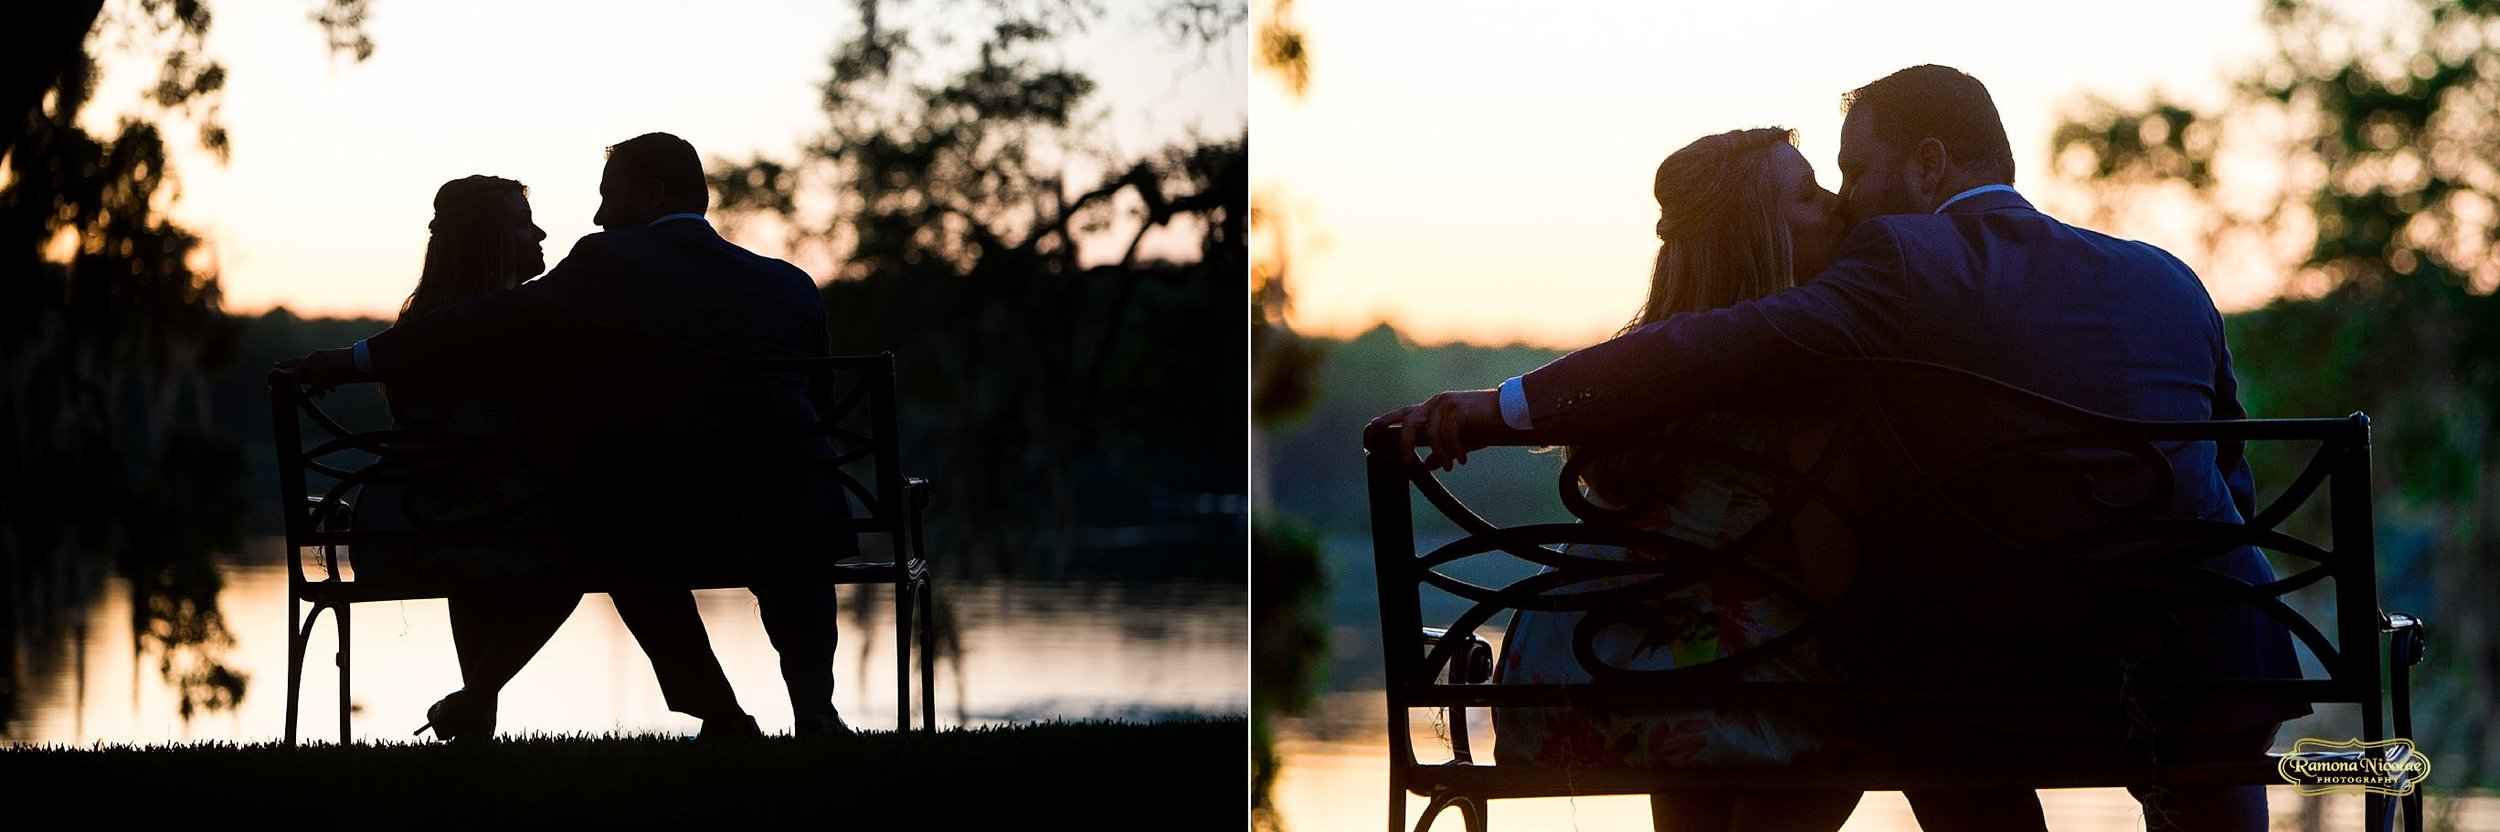 silhouette of couple during sunset at wachesaw pantation with rmaona nicolae myrtle beach wedding photographer.jpg